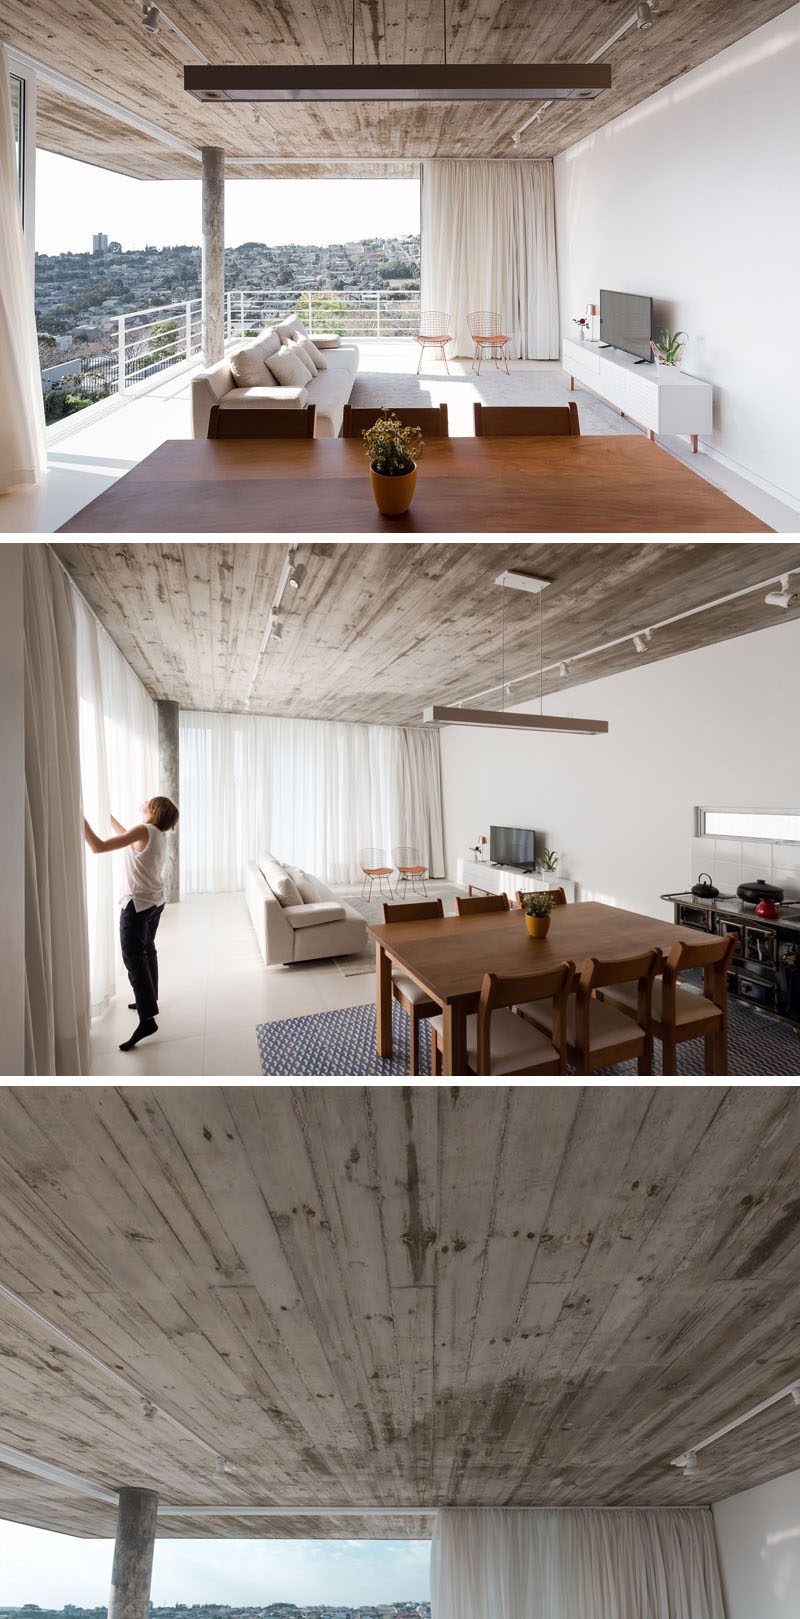 The ceiling throughout the home is made from concrete that was cast in place, allowing the finished ceiling to reveal the wood texture of the form.